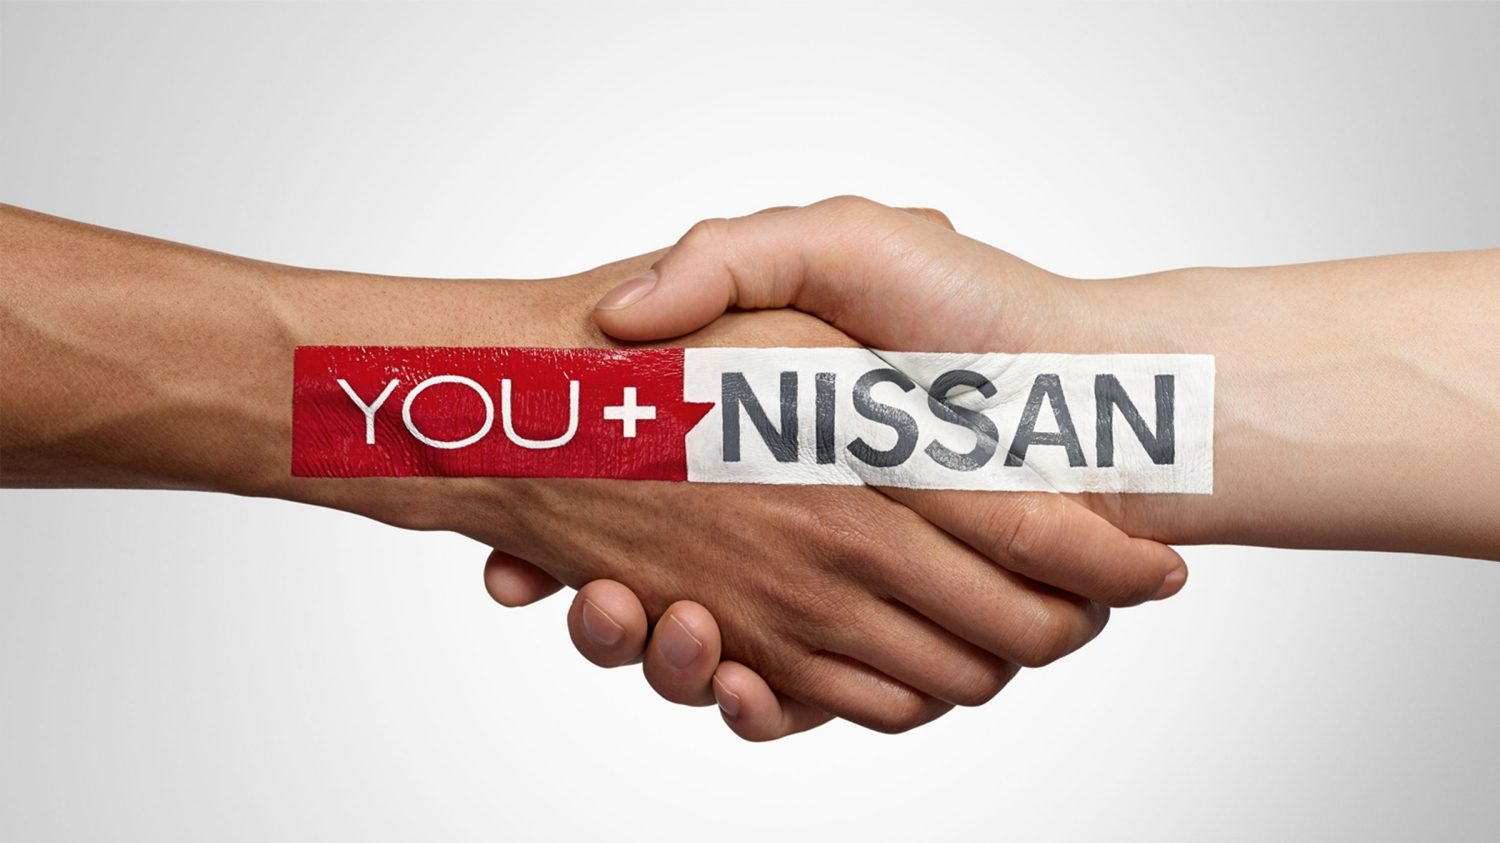 You+Nissan – Bild